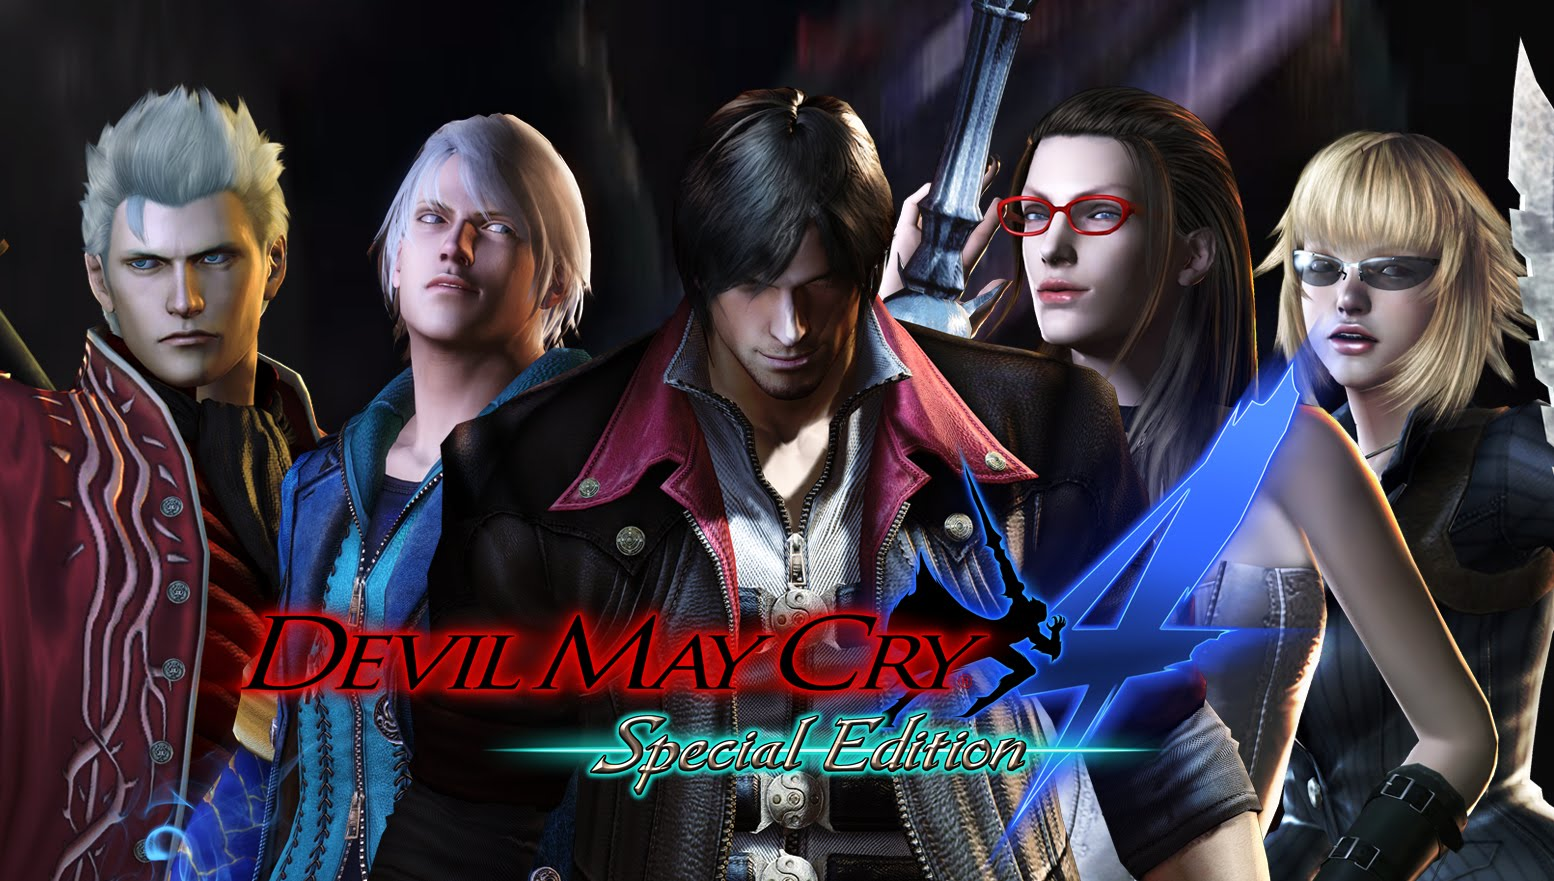 Devil May Cry 4 Wallpapers Video Game Hq Devil May Cry 4